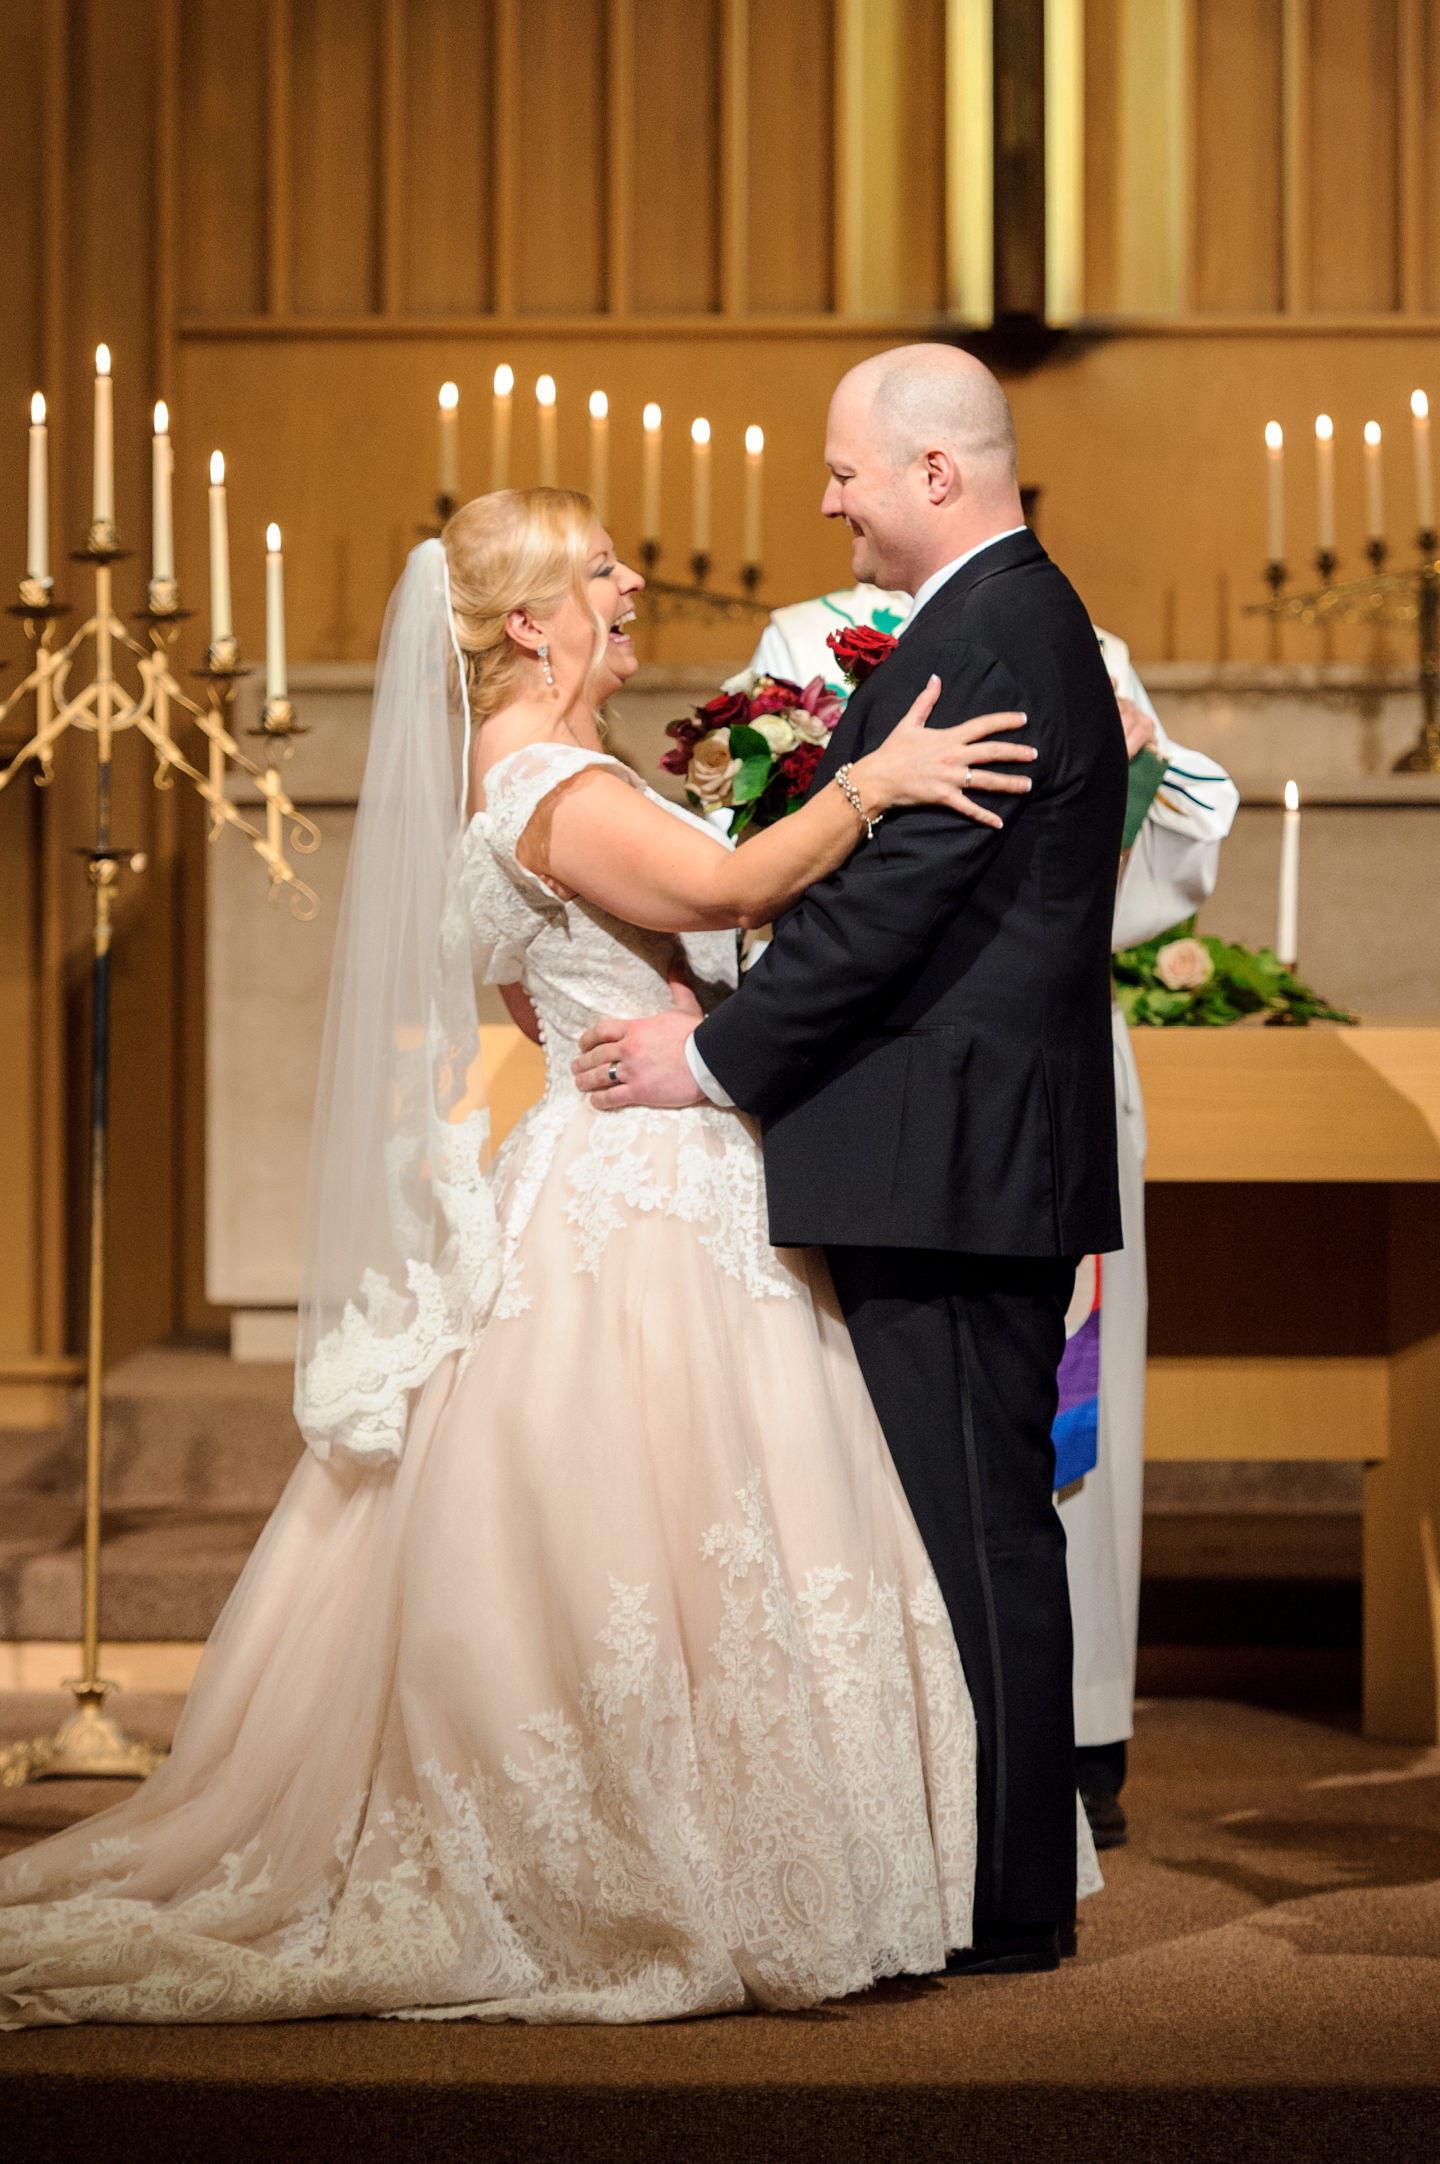 Bride and Groom Just Married at University Lutheran Church